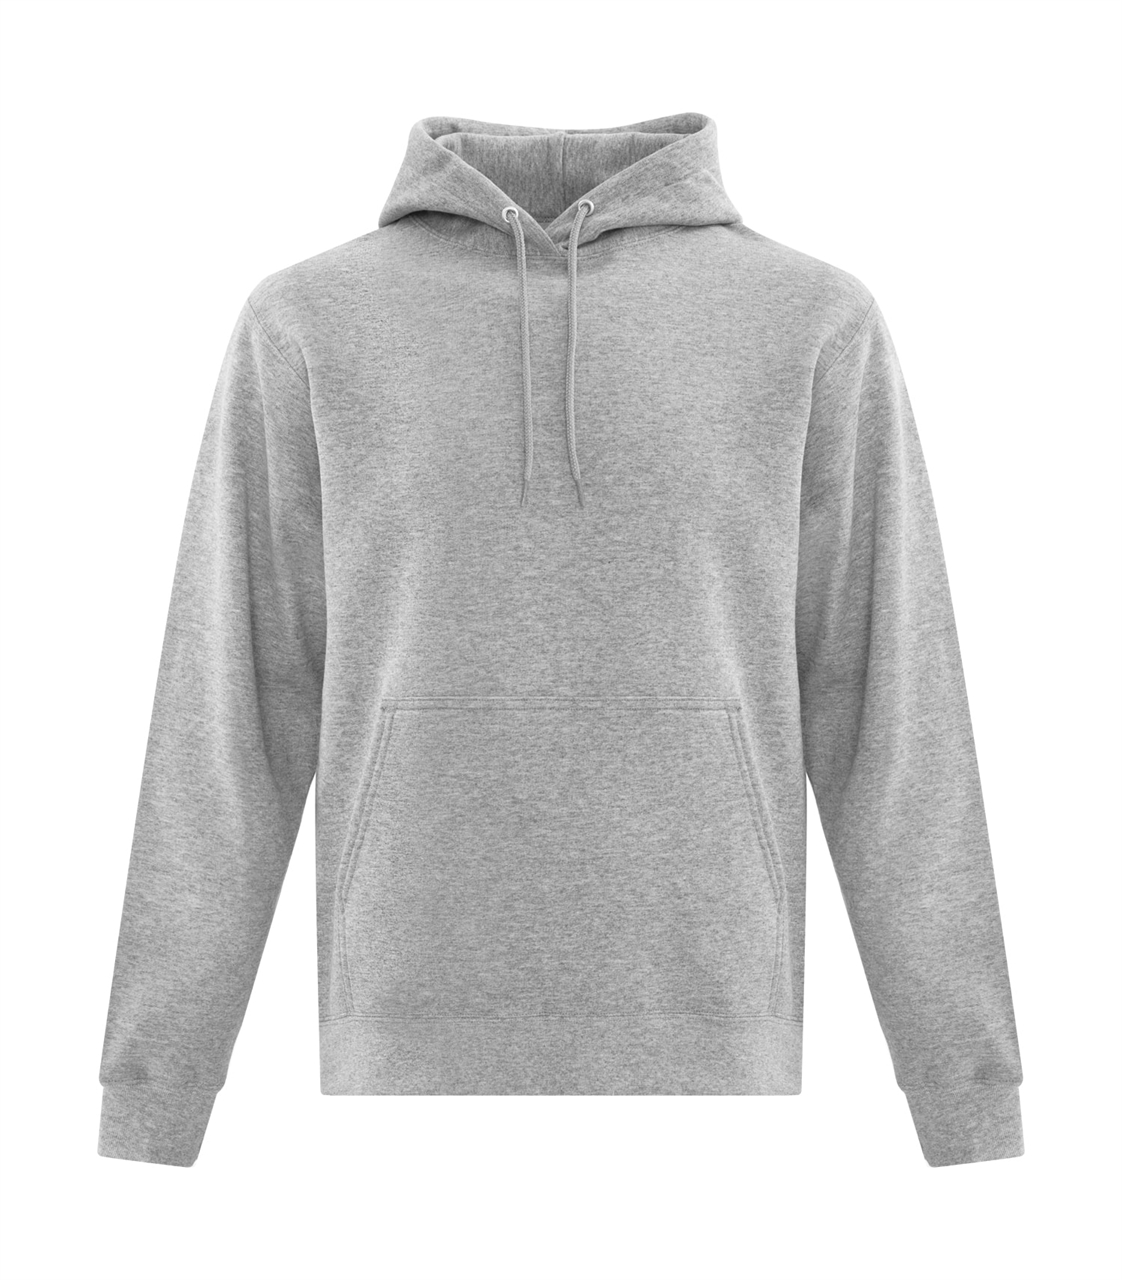 Picture of ATC Everyday Fleece Hooded Sweatshirt